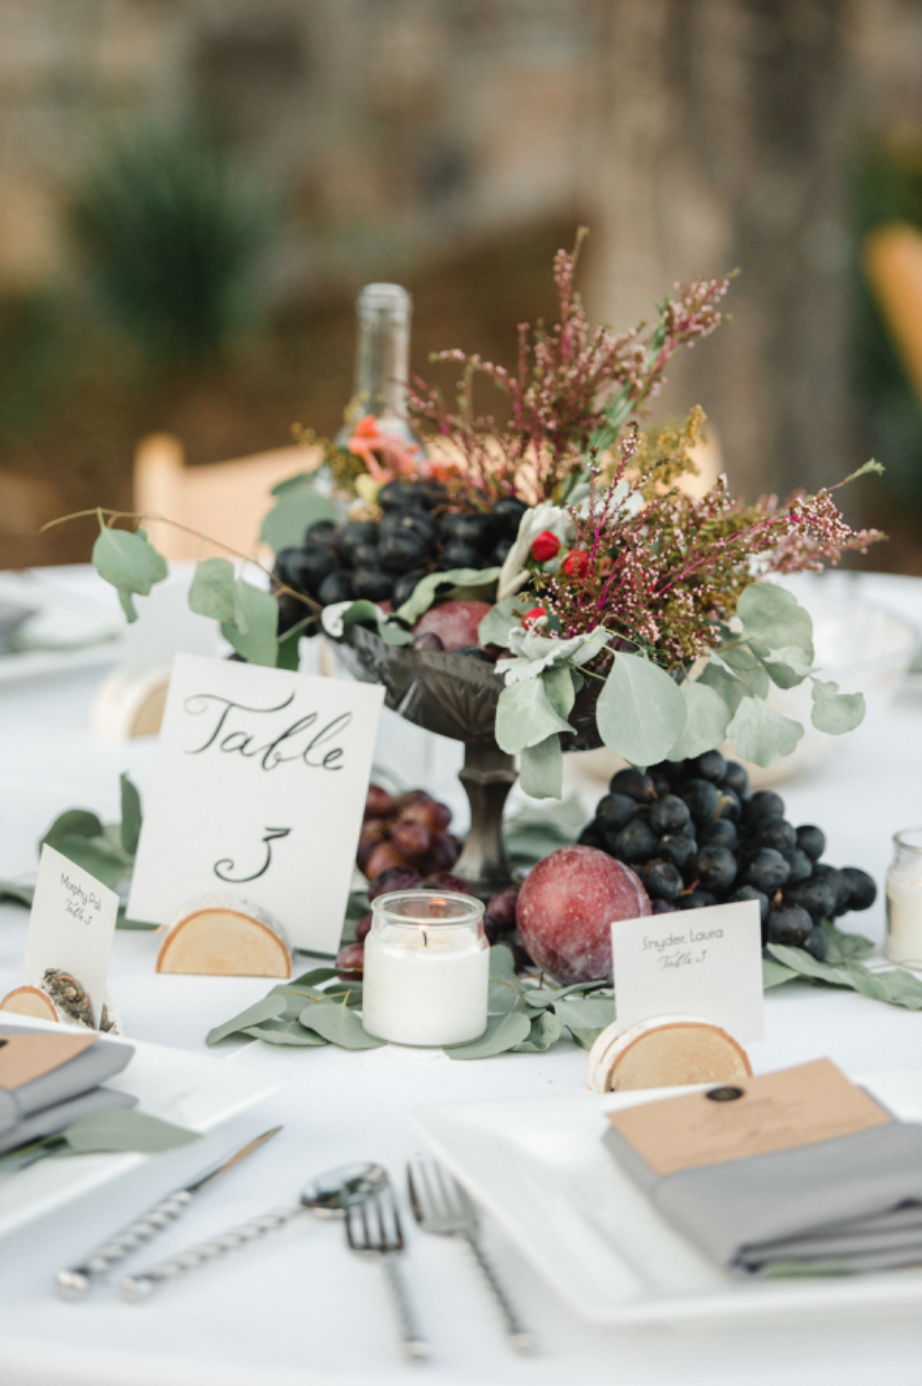 Using fruit and/or veggies in your centerpiece is a fun & interactive way to wow guests. Photo by: Rebecca Hollis Photography